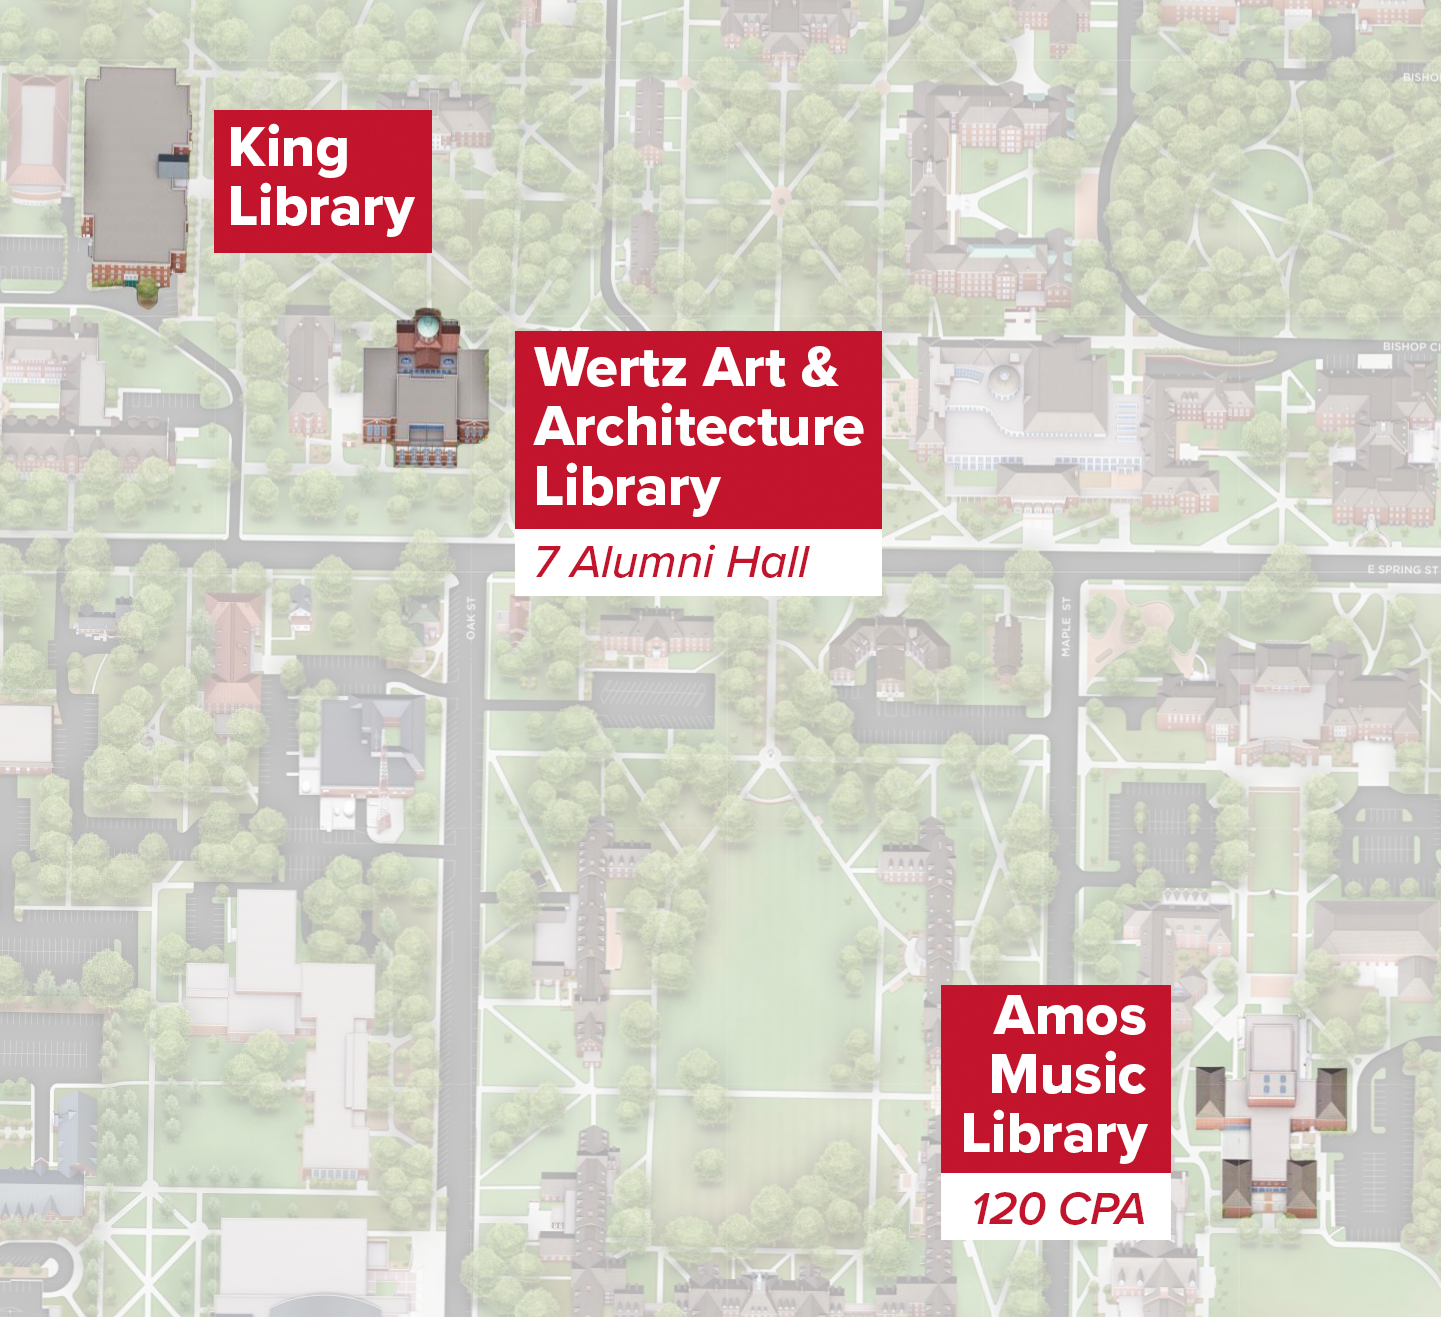 2020-21 Oxford Campus Library Locations